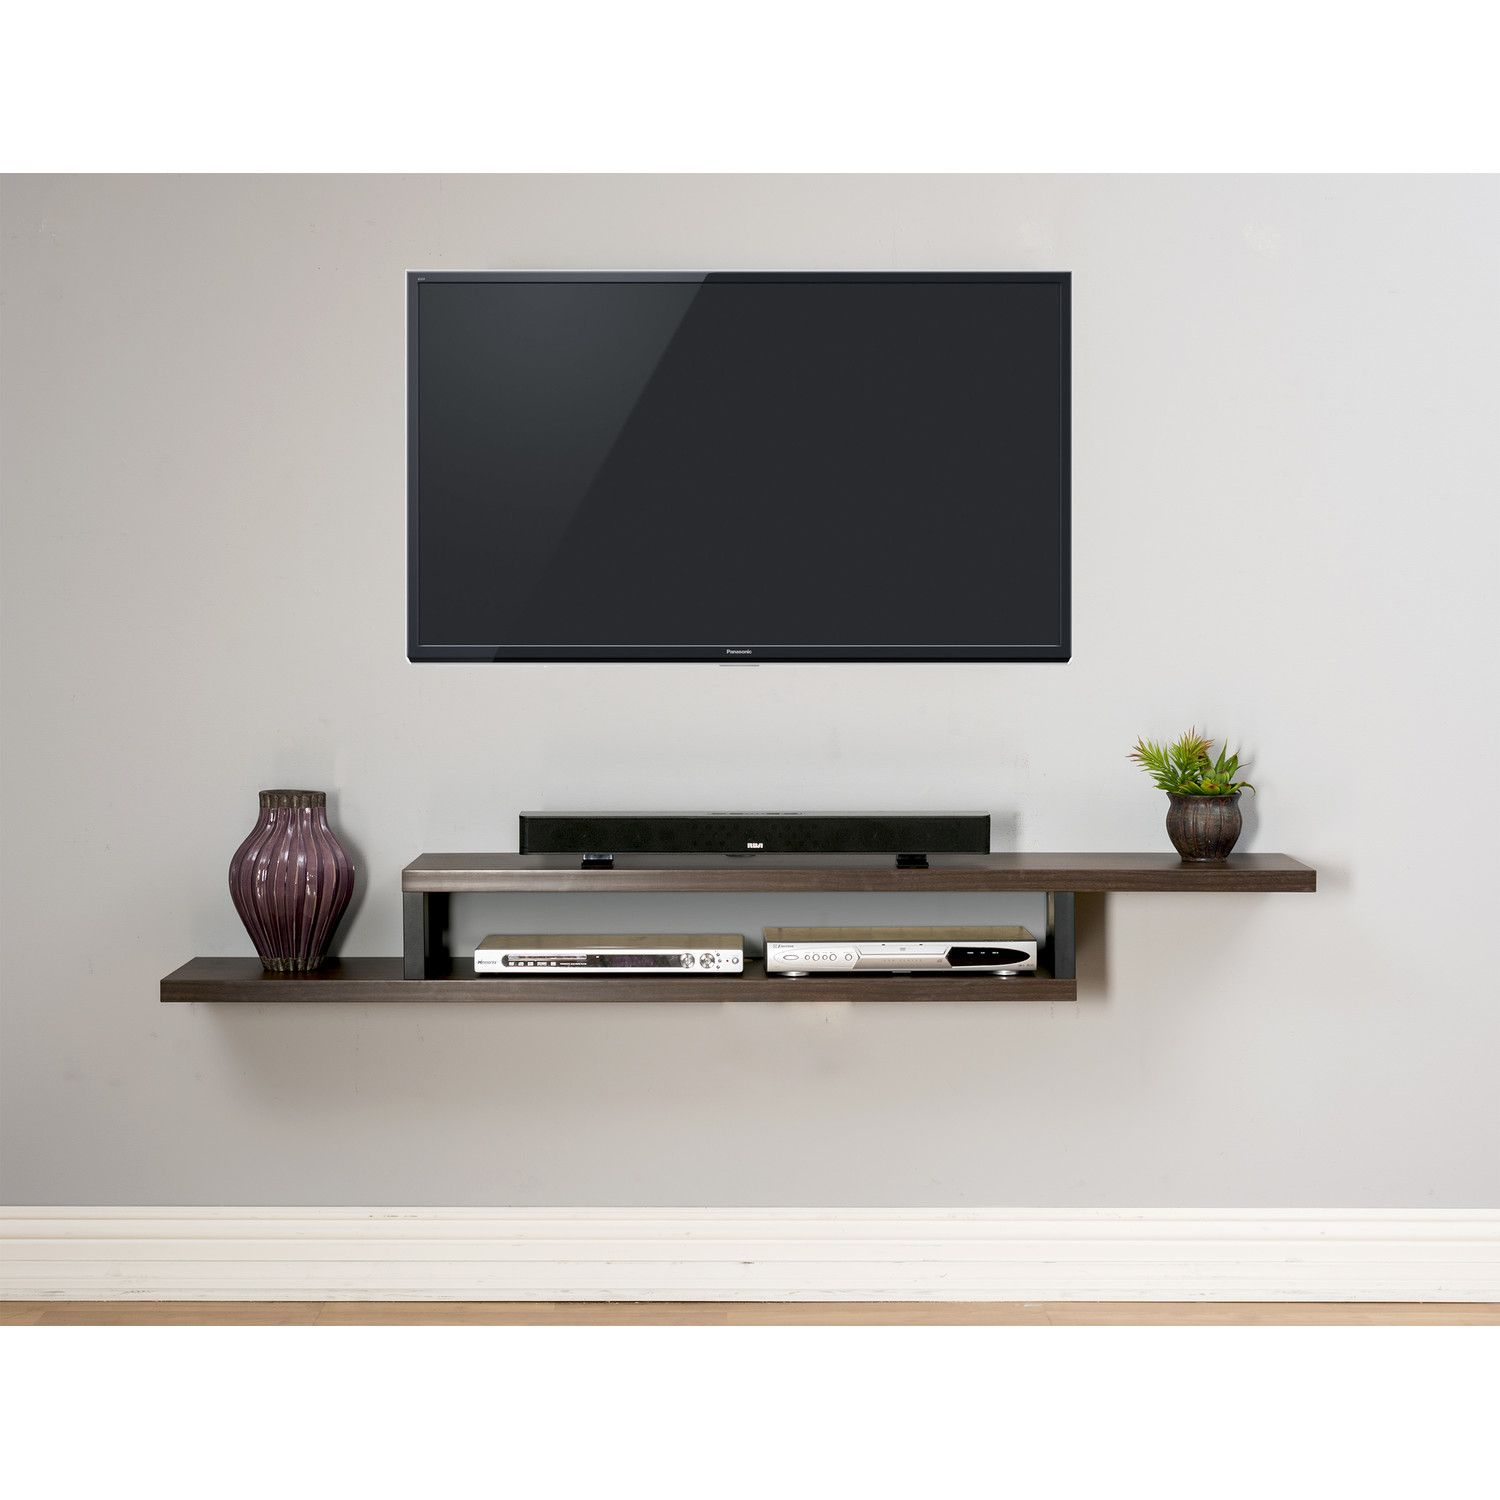 Pictures Of Wall Mounted Tv  Google Search - Living